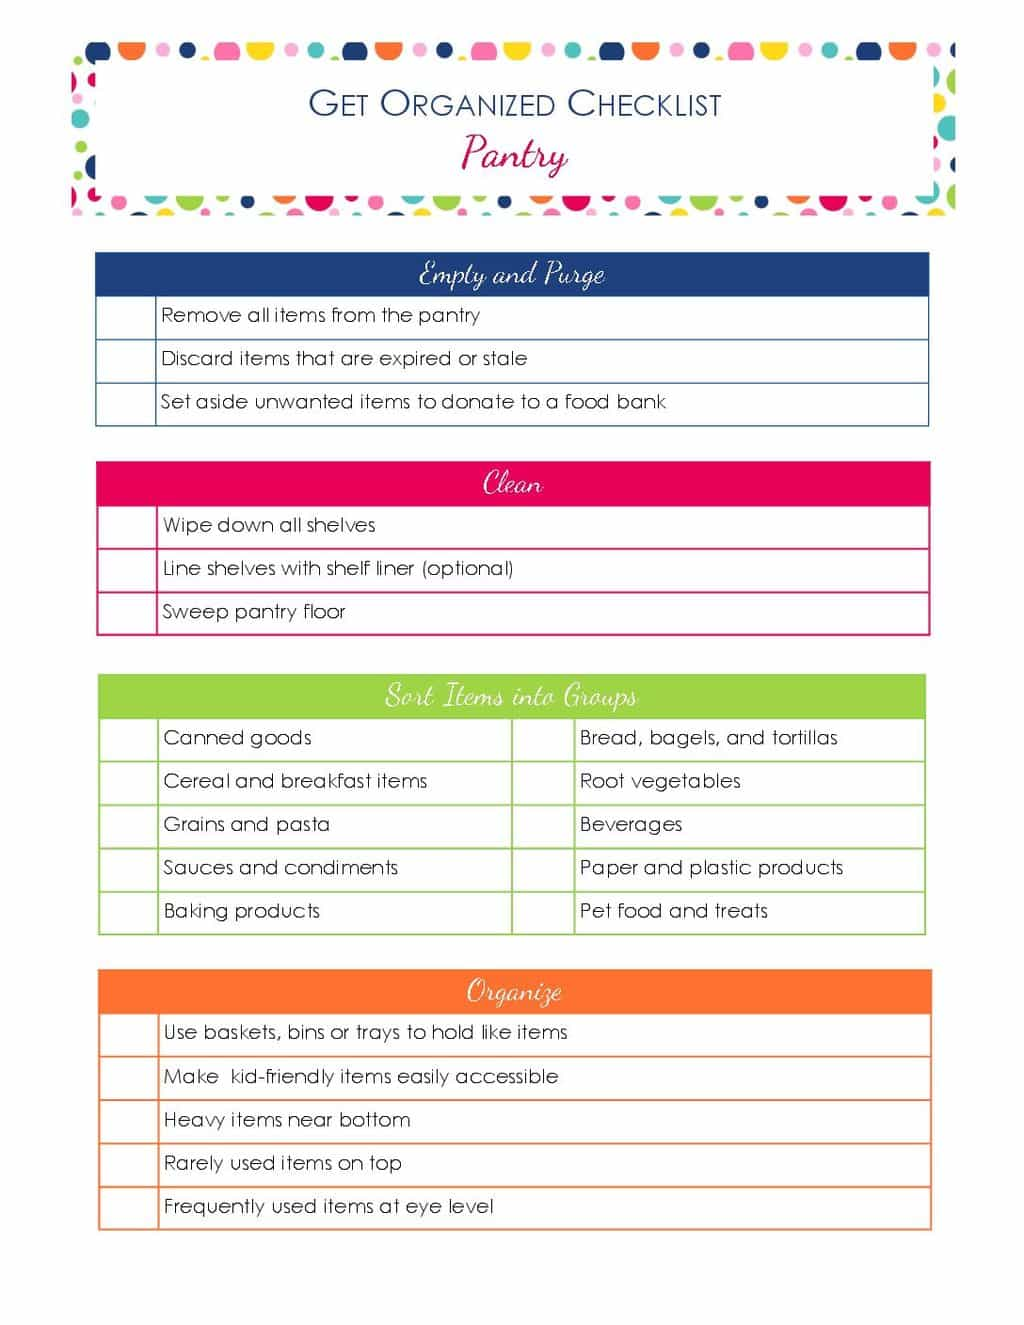 I almost had fun organizing my pantry using this get organized checklist for your pantry! It breaks the process down into simple steps and the post is full of helpful tips too!